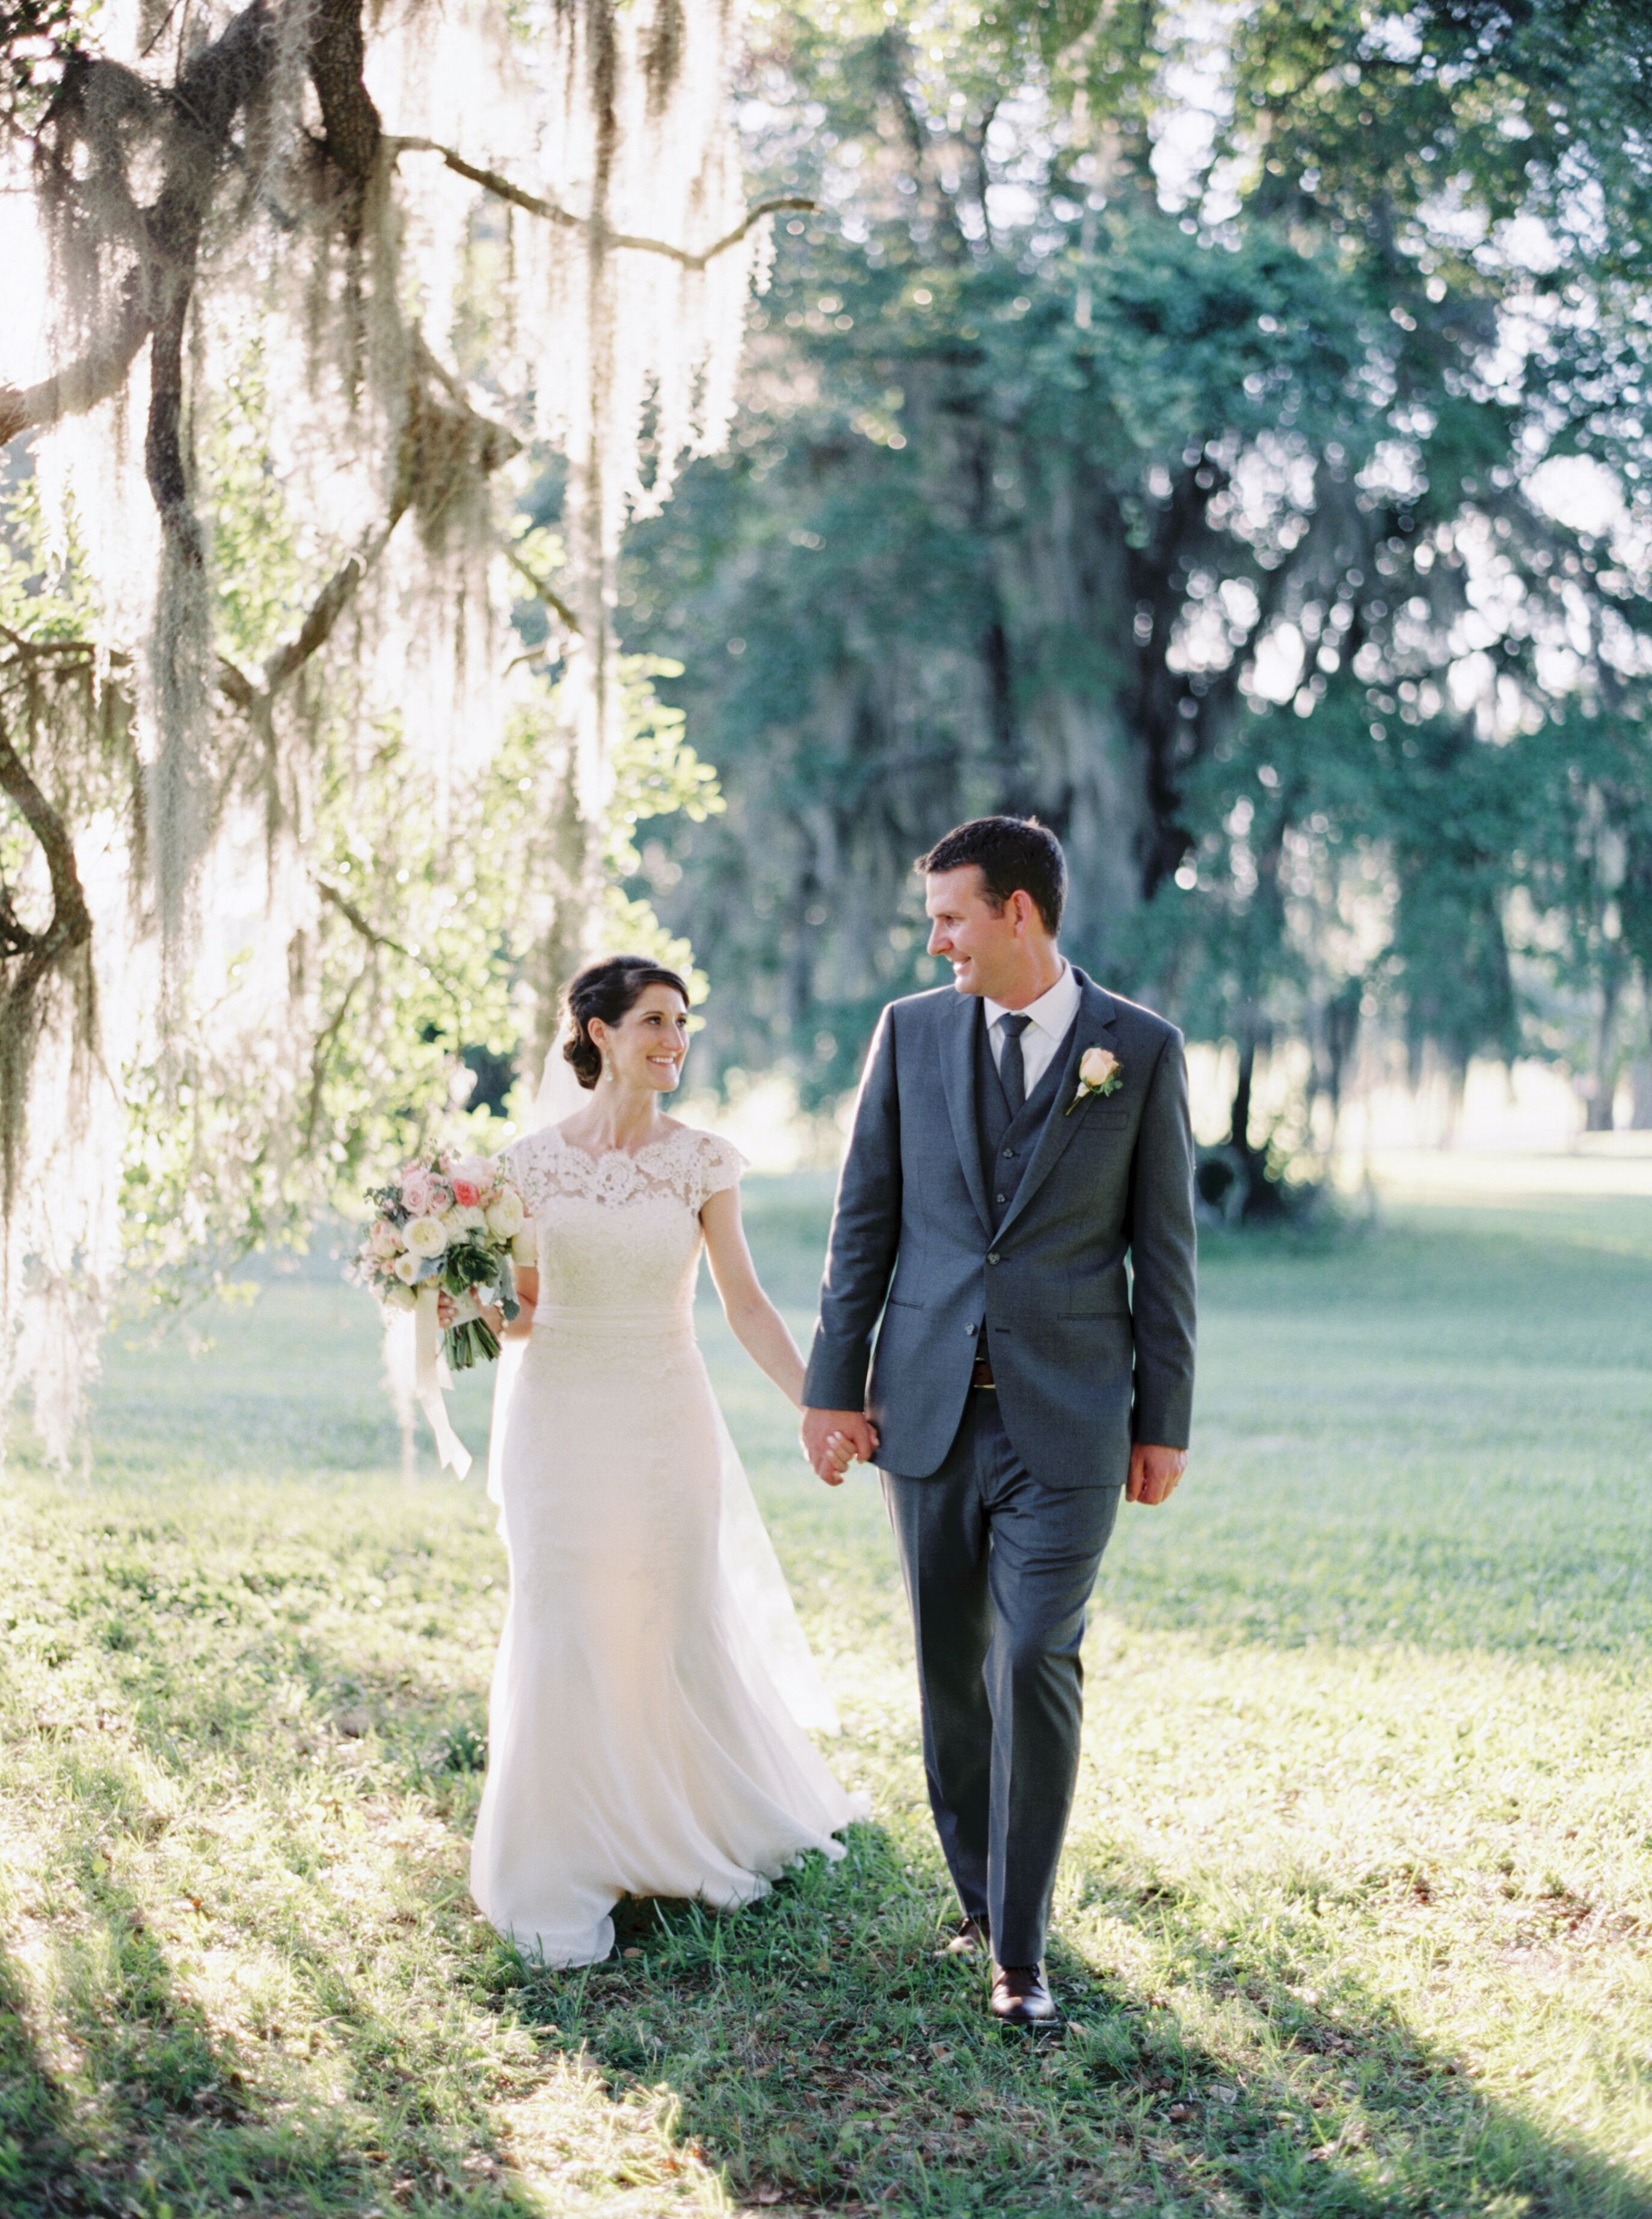 A Southern Garden Style Wedding At Southwood House And Cottages In Tallahassee Florida,Wedding Dresses For Men And Women In India